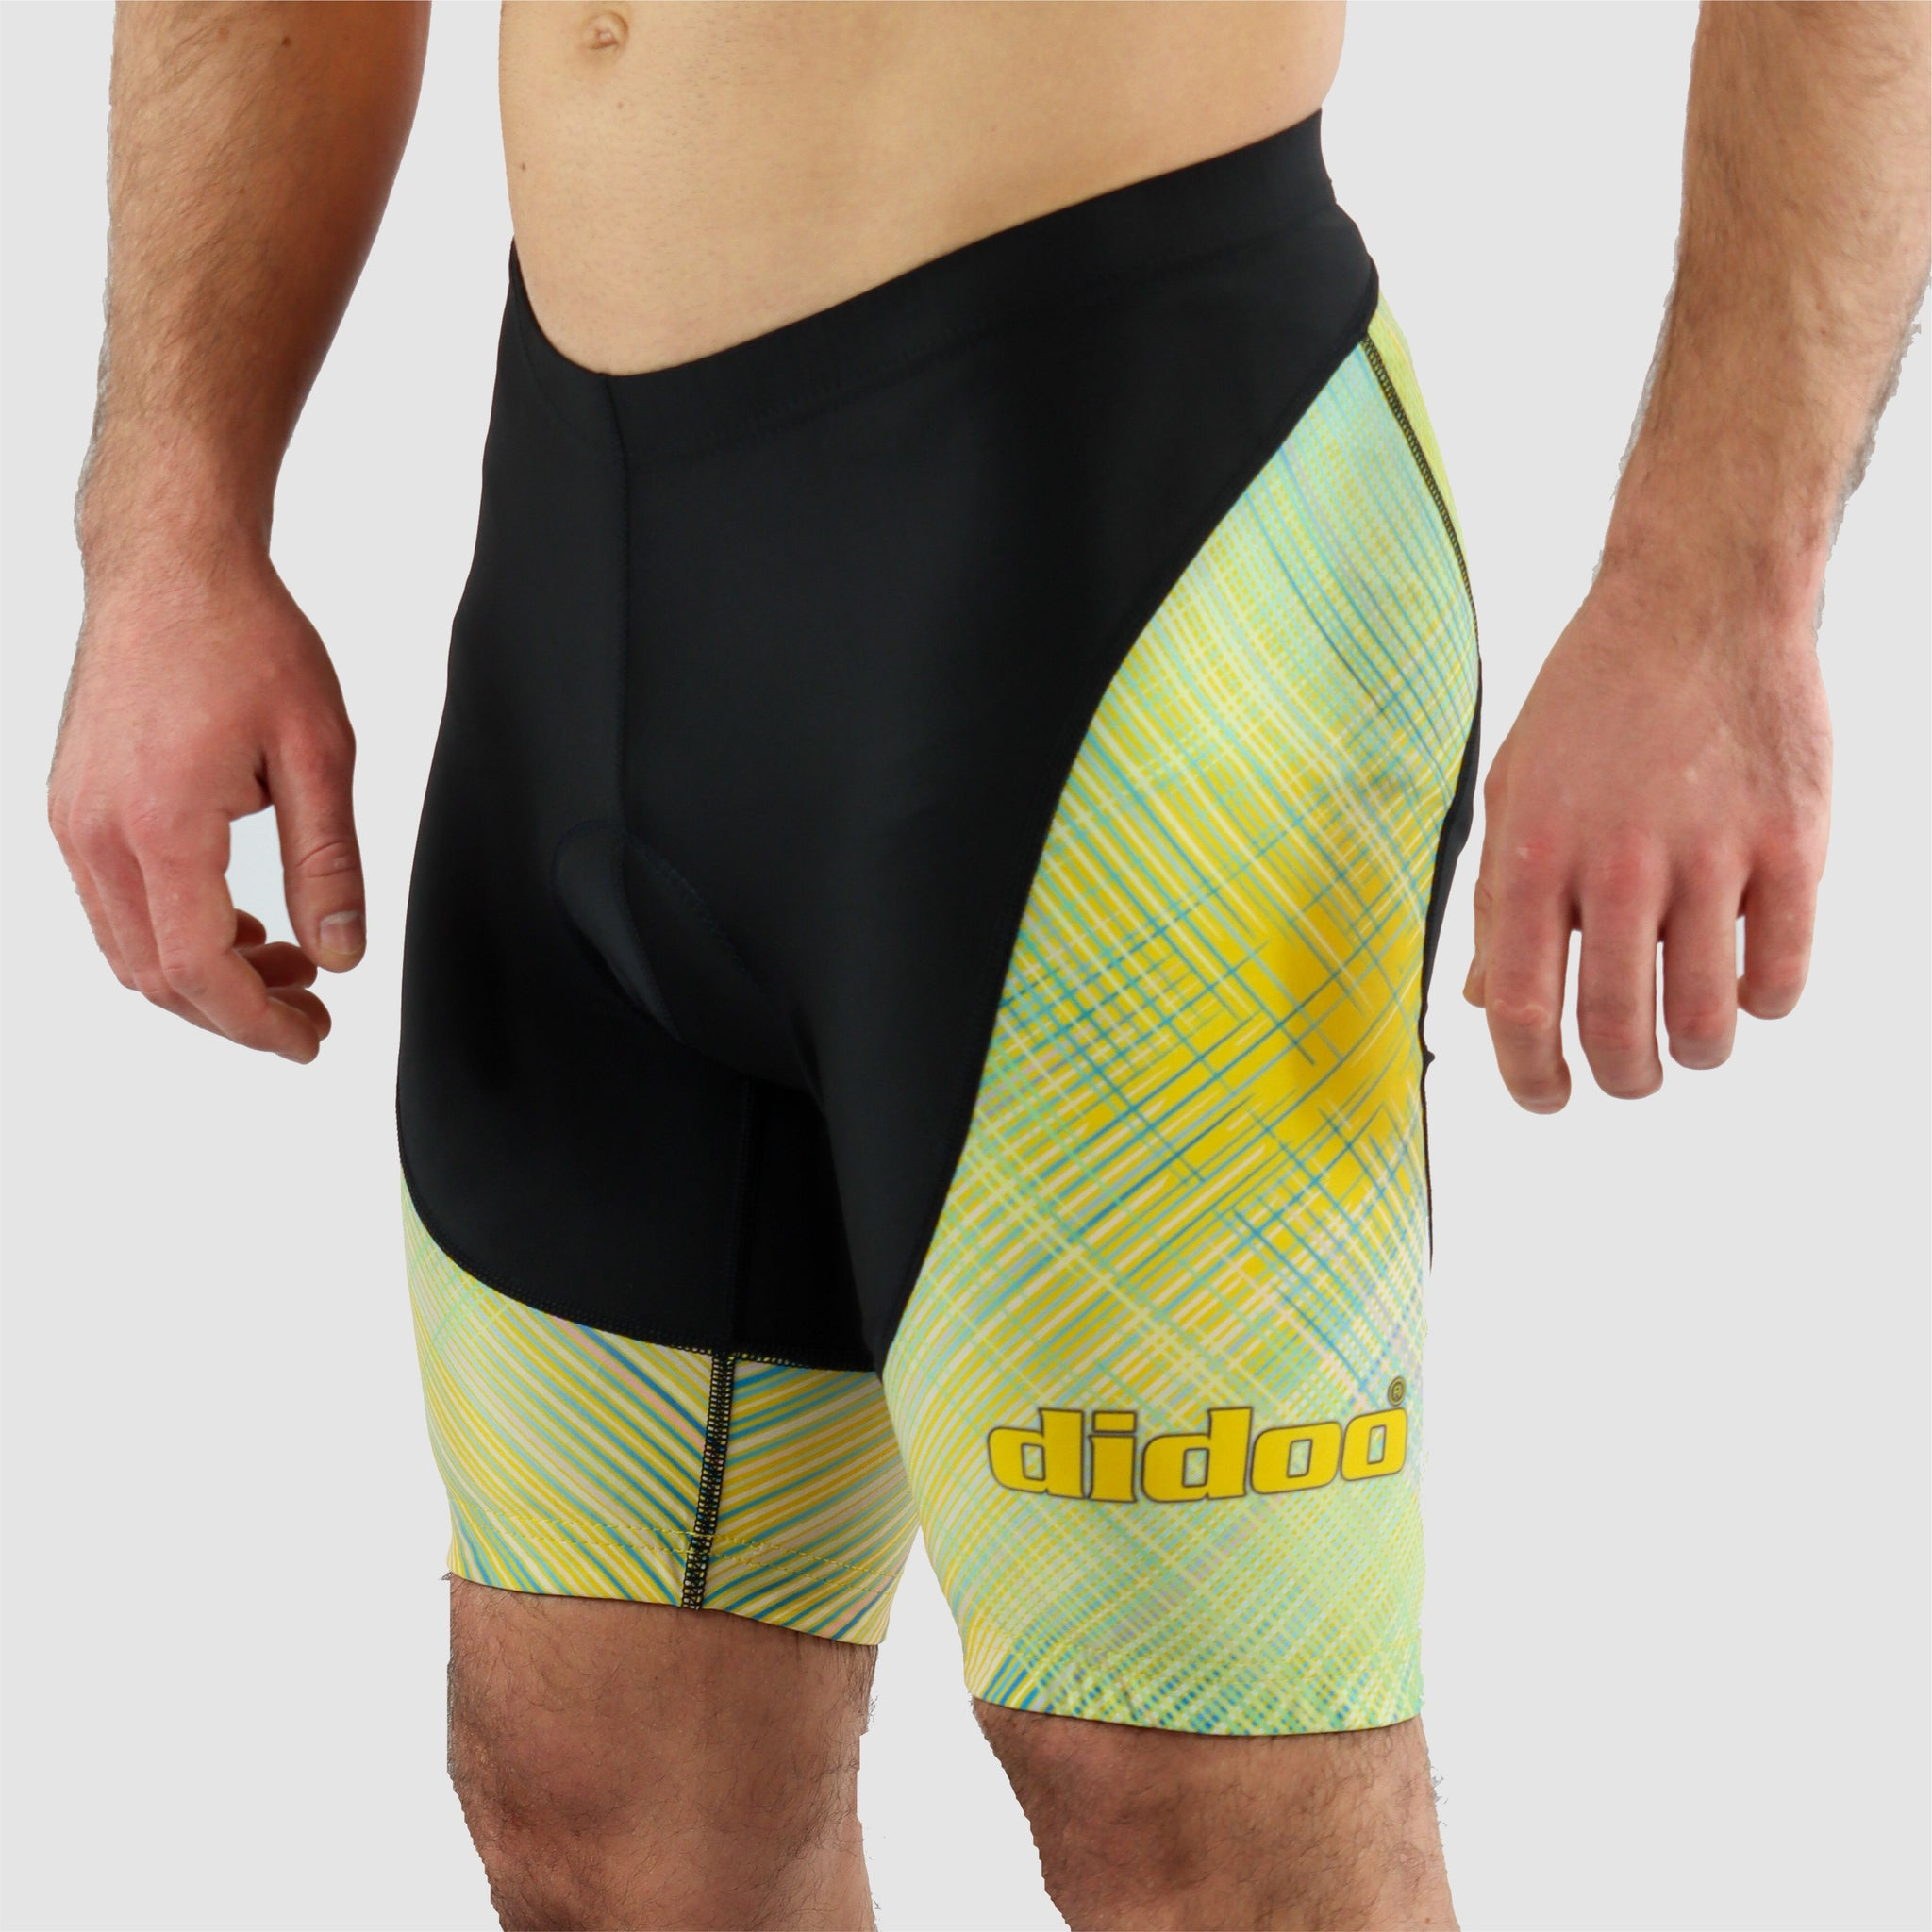 DiDOO Men's Classic Quick Dry Padded Cycling Shorts Black and Yellow